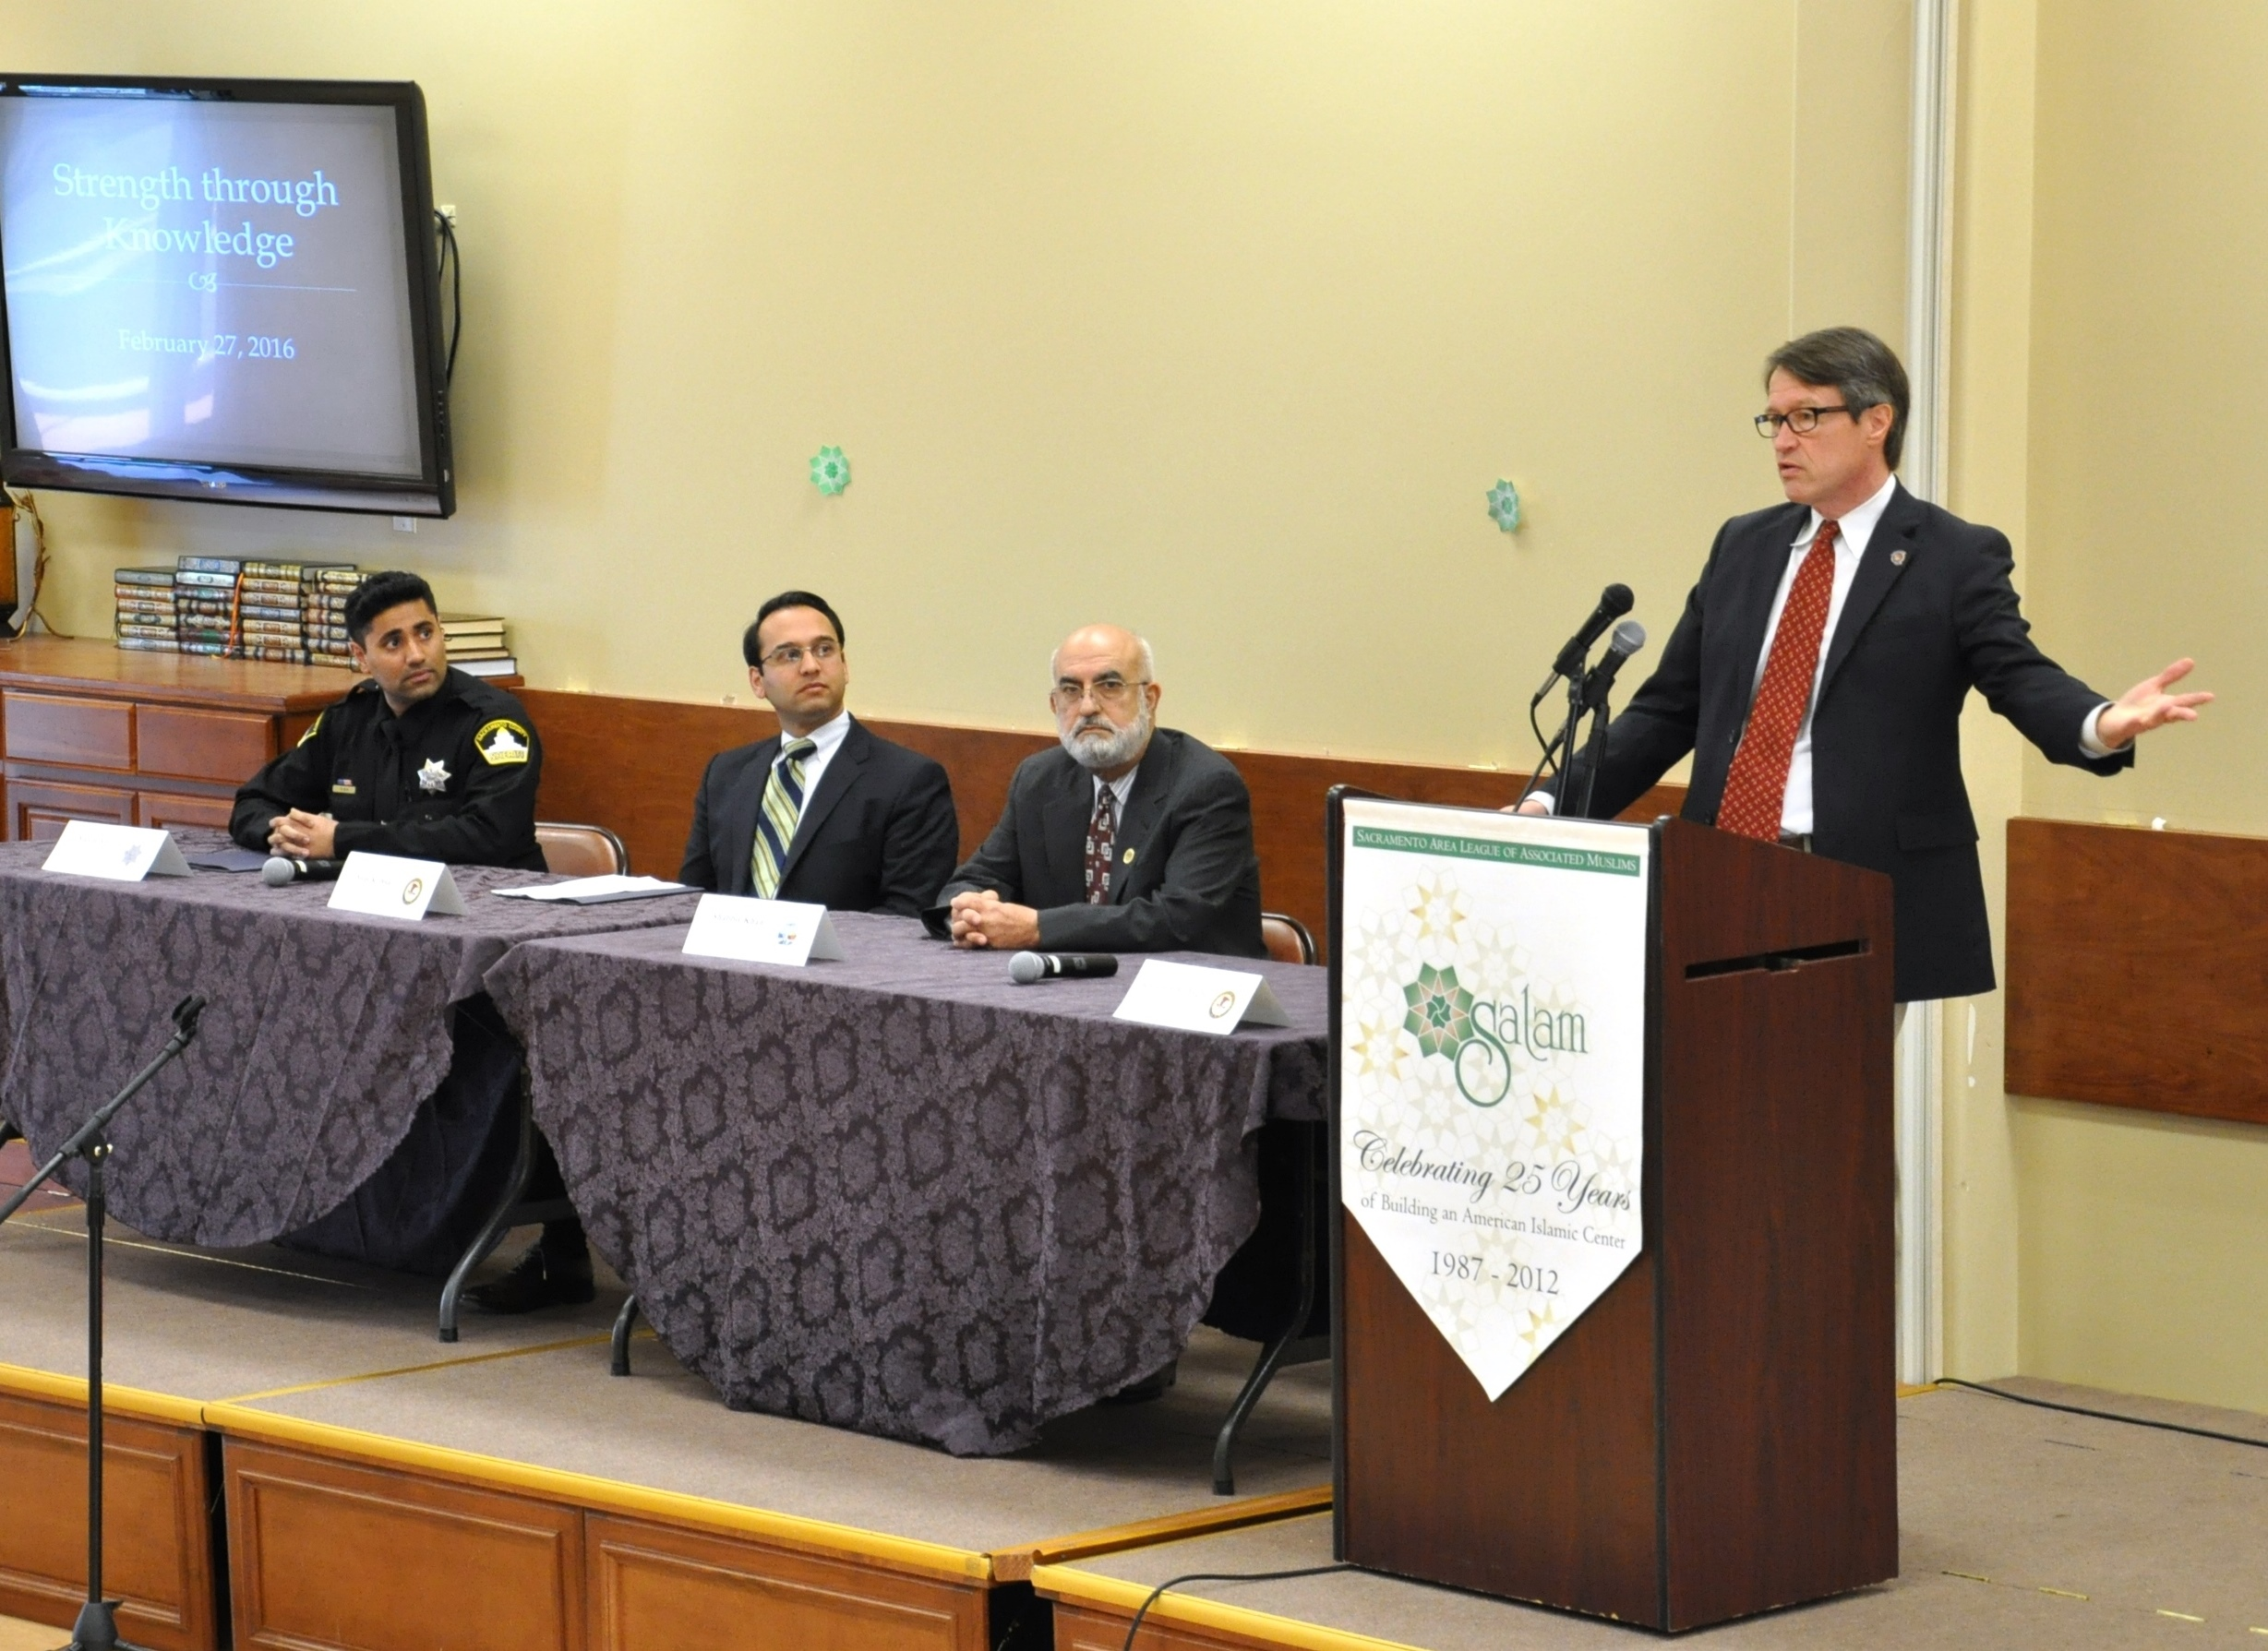 On February 27, 2016, The United States Attorney's Office participated in a community building event hosted by the SALAM Islamic Center in Sacramento - the daylong event drew around 80 members of the Muslim Community from the Sacramento area for a series